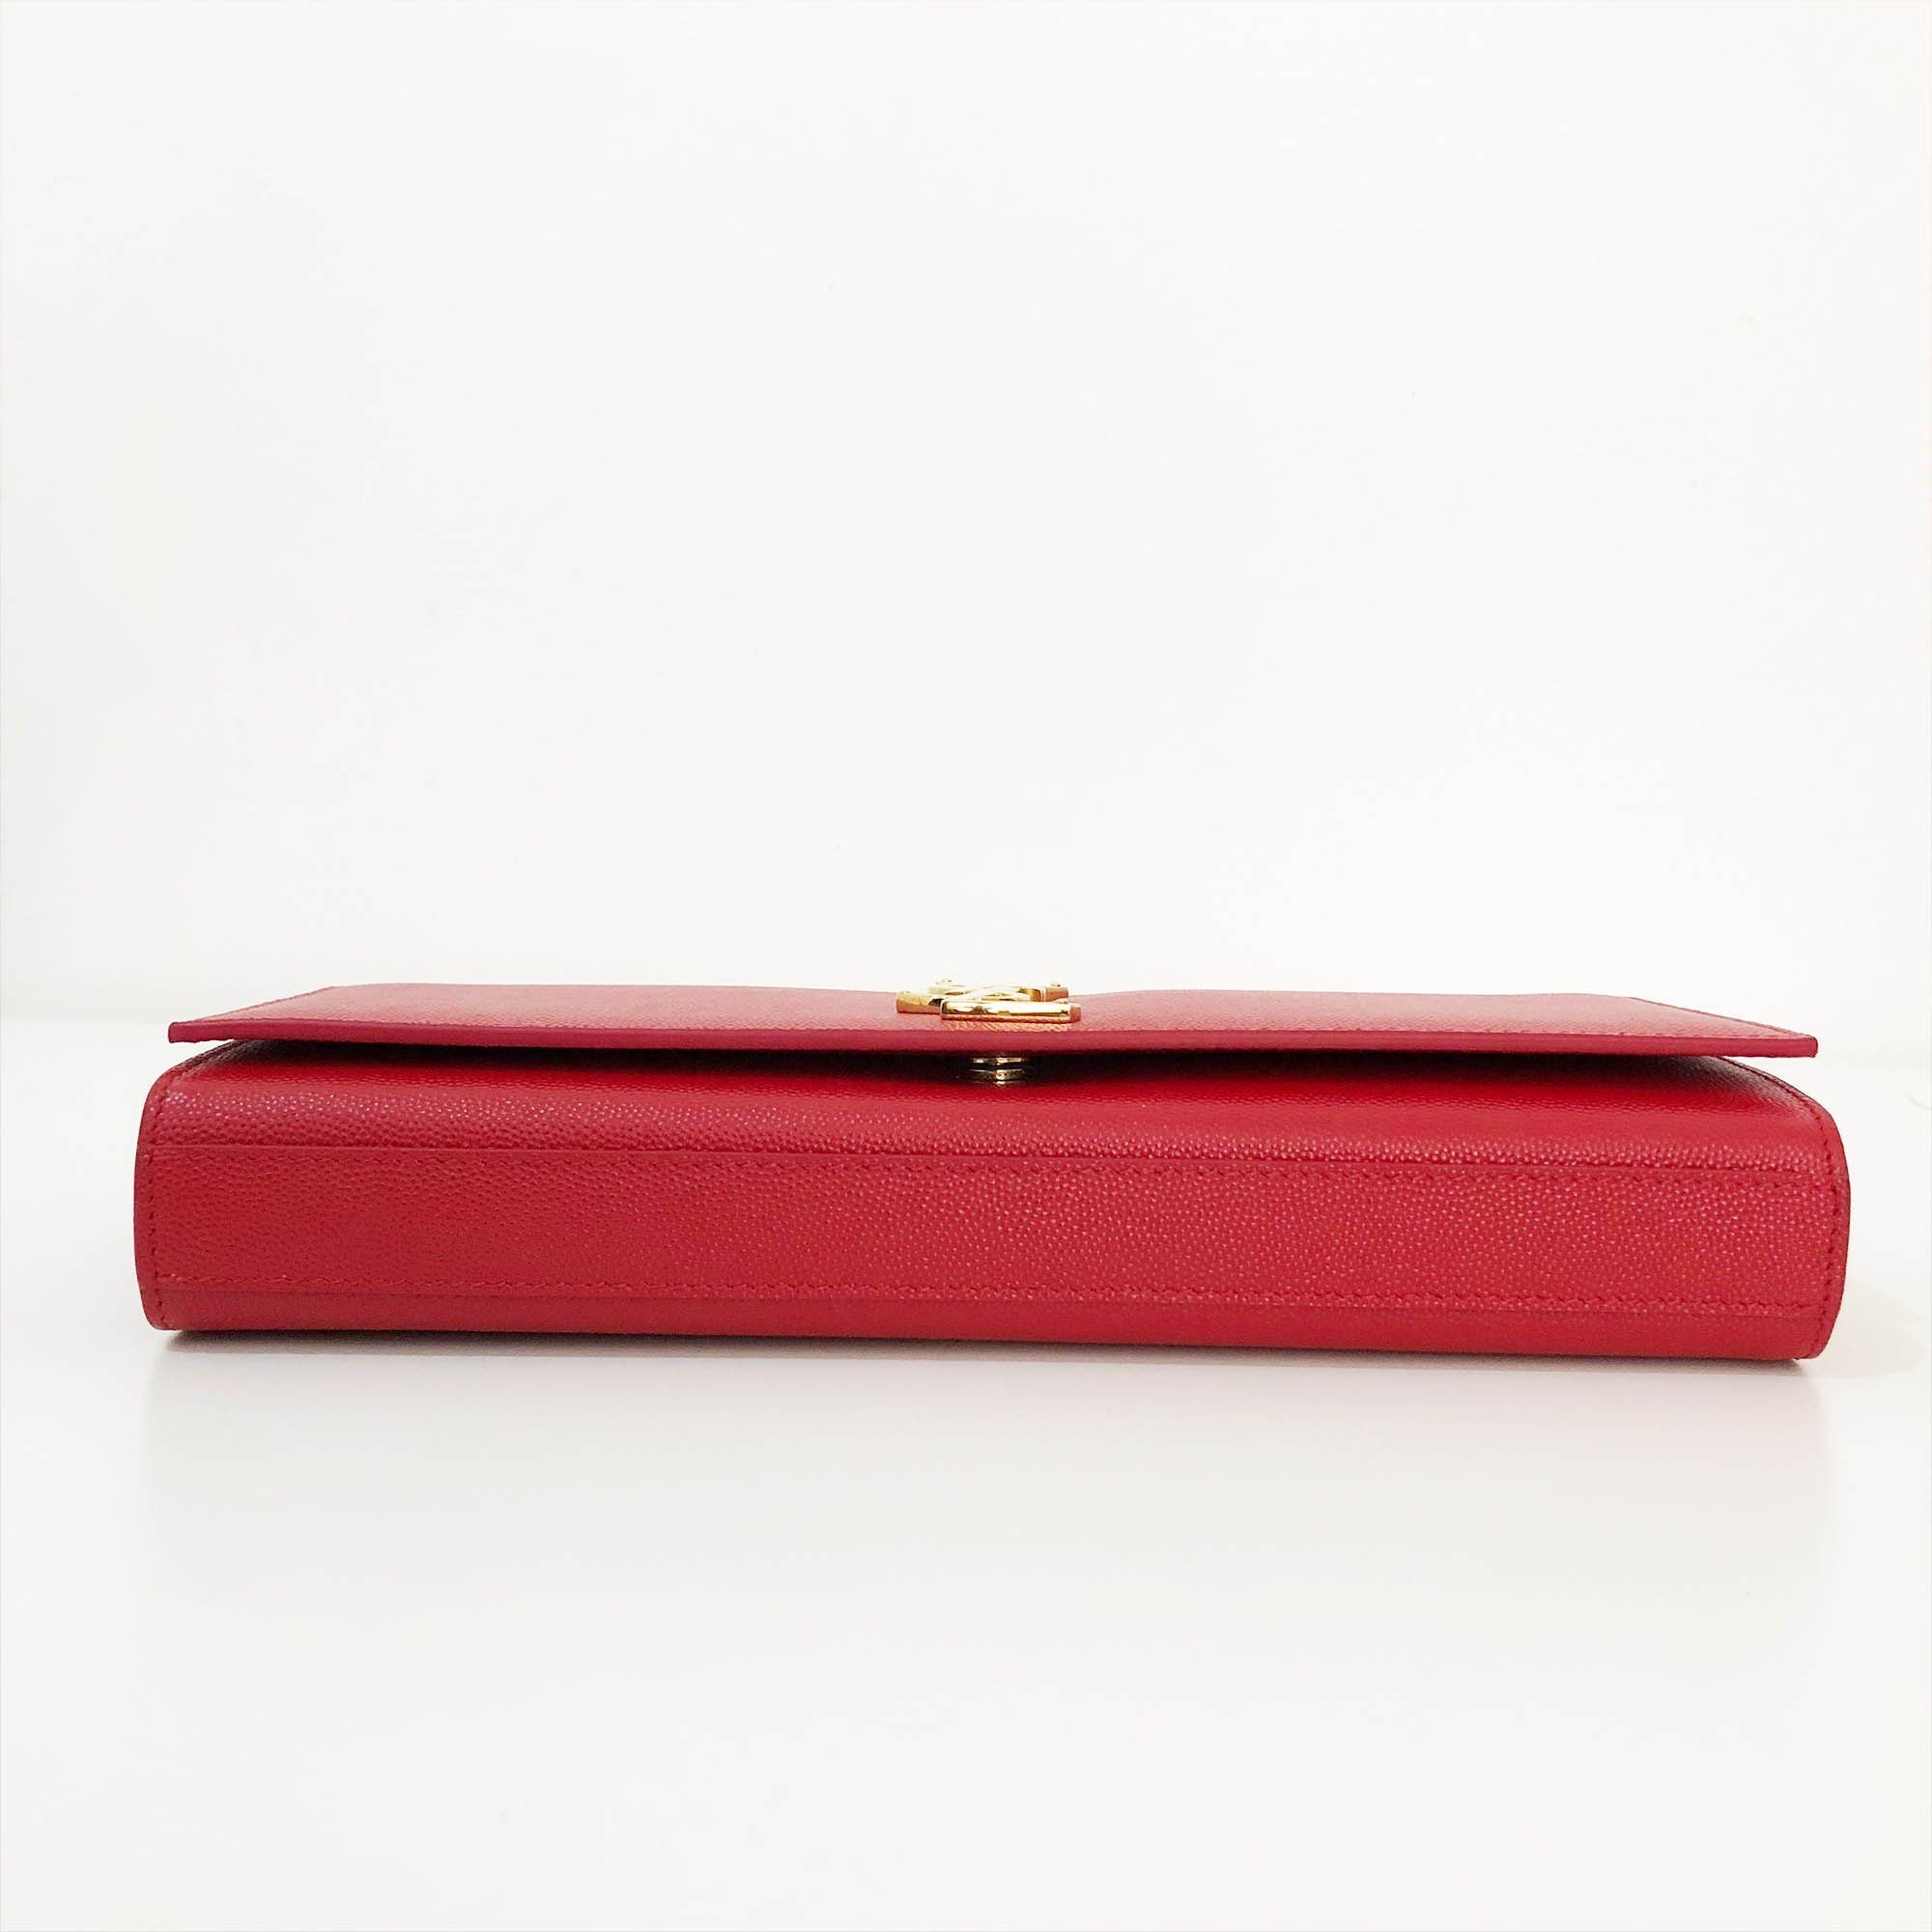 Yves Saint Laurent Red Cassandre Leather Clutch